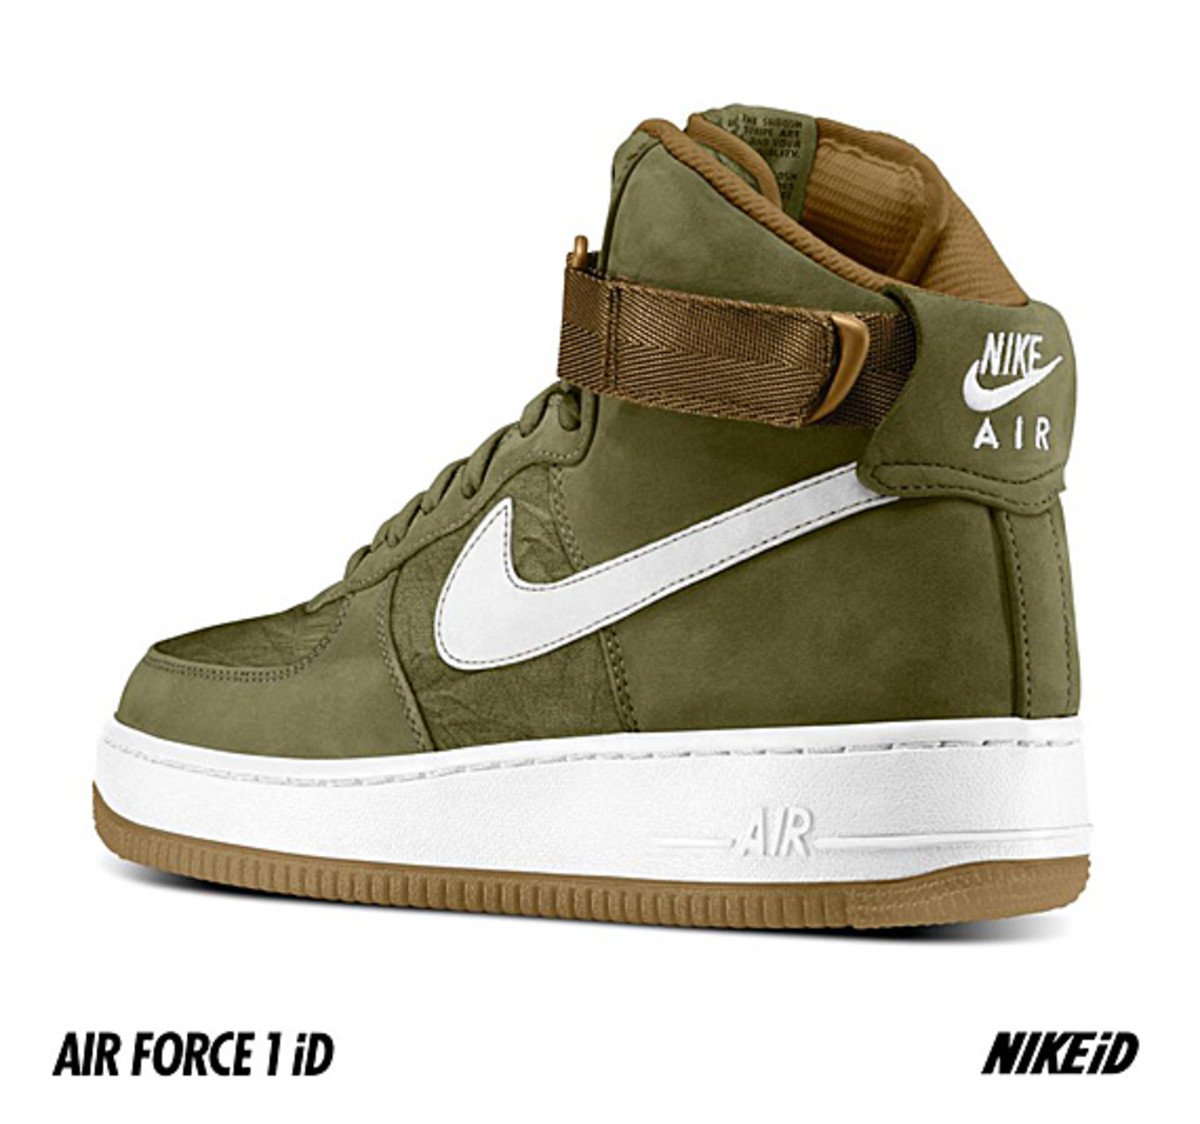 nikeid-air-force-1-id-10th-mountain-division-05